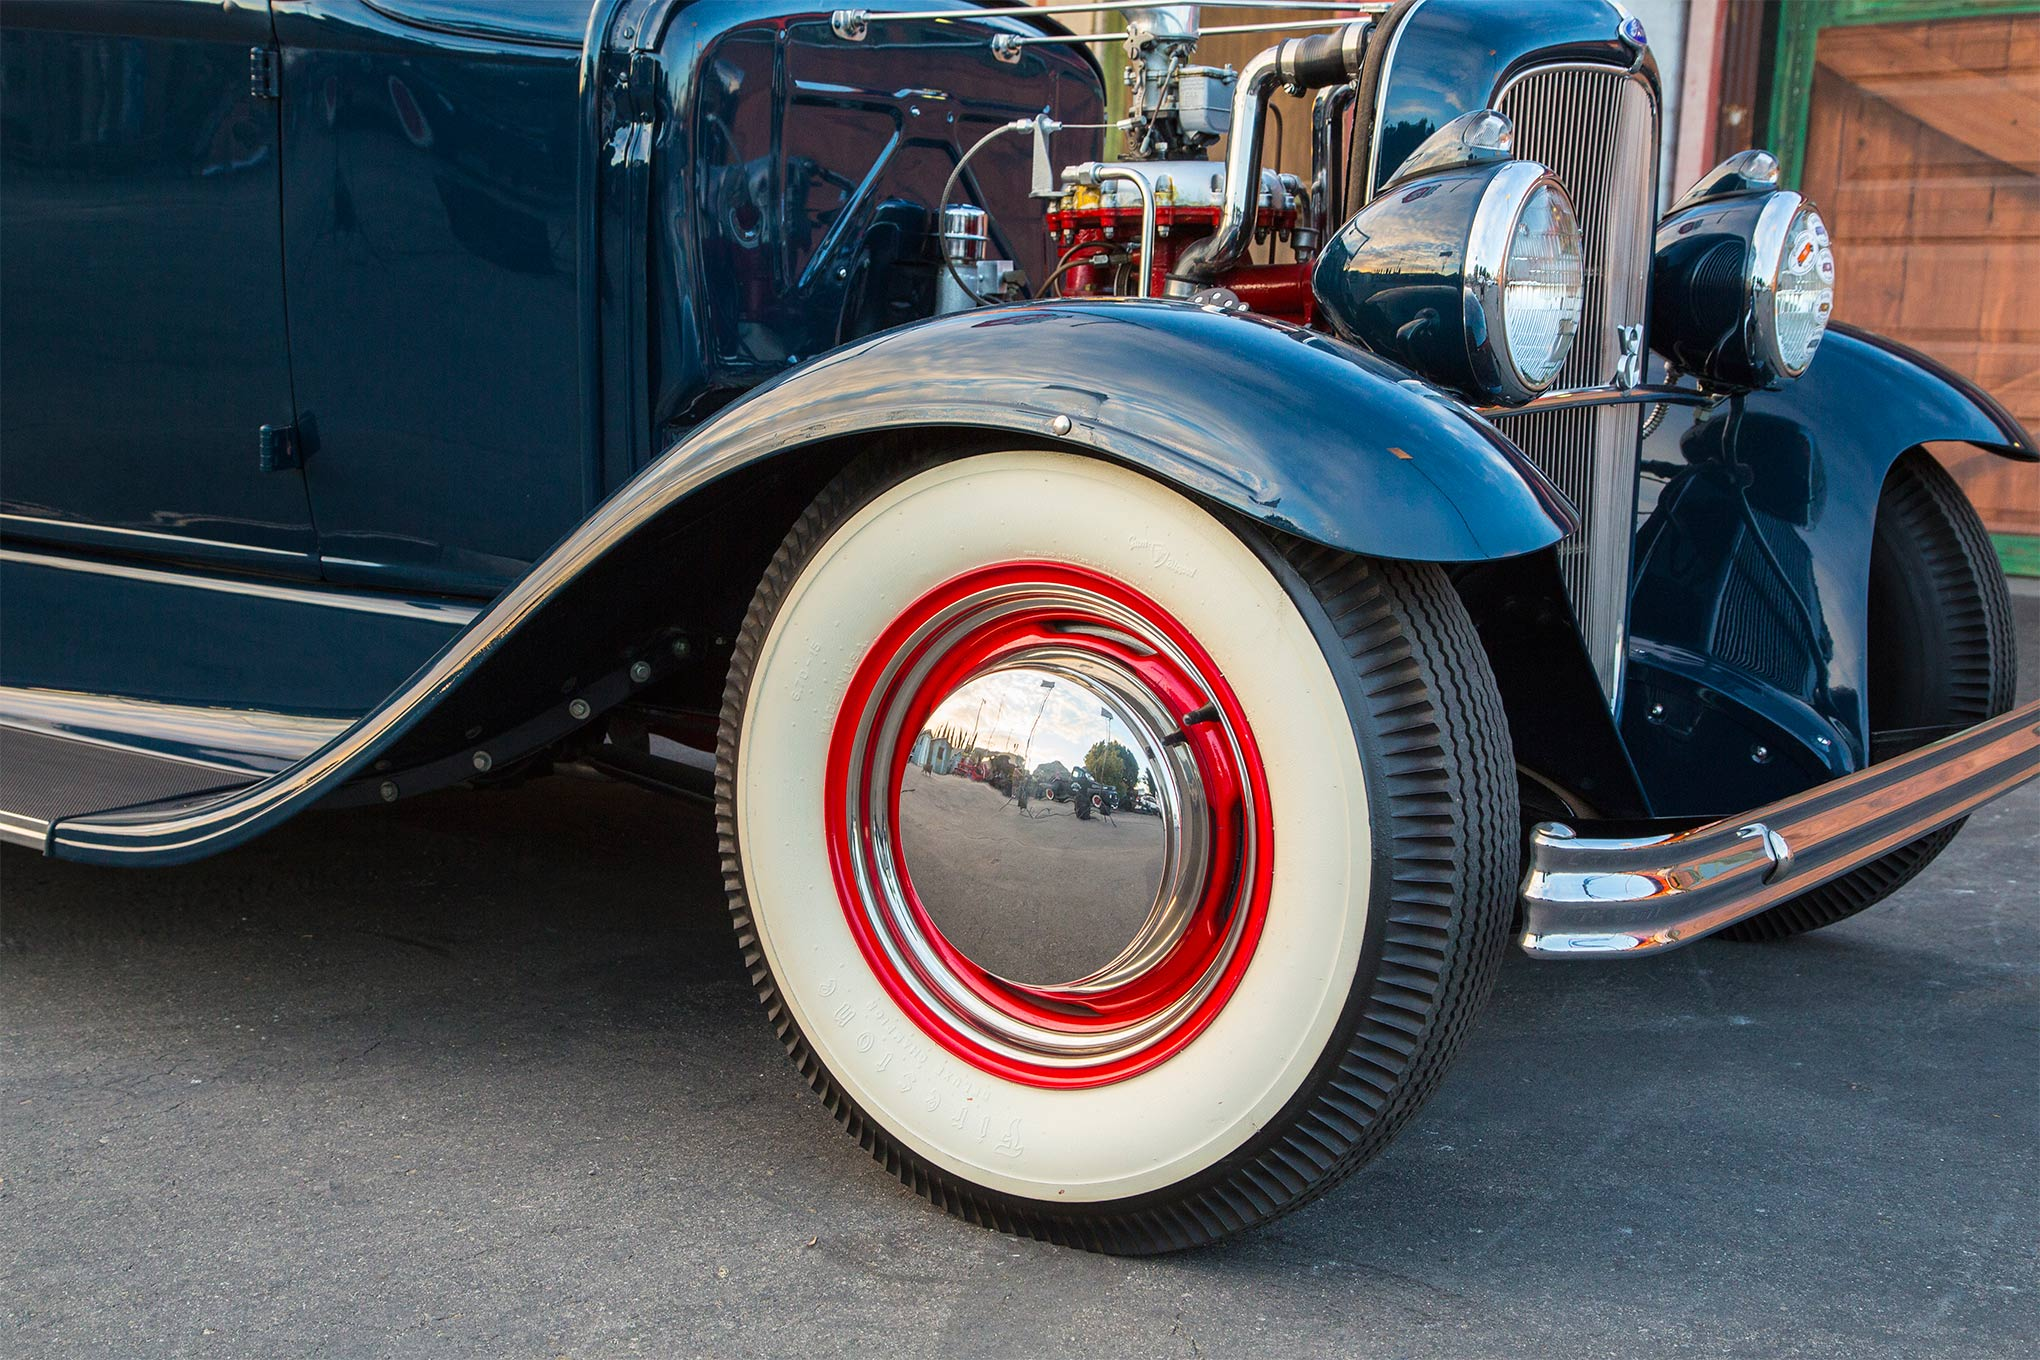 Rolling stock consists of '50 Mercury wheels and caps front and rear mounting Coker Firestone wide whites.